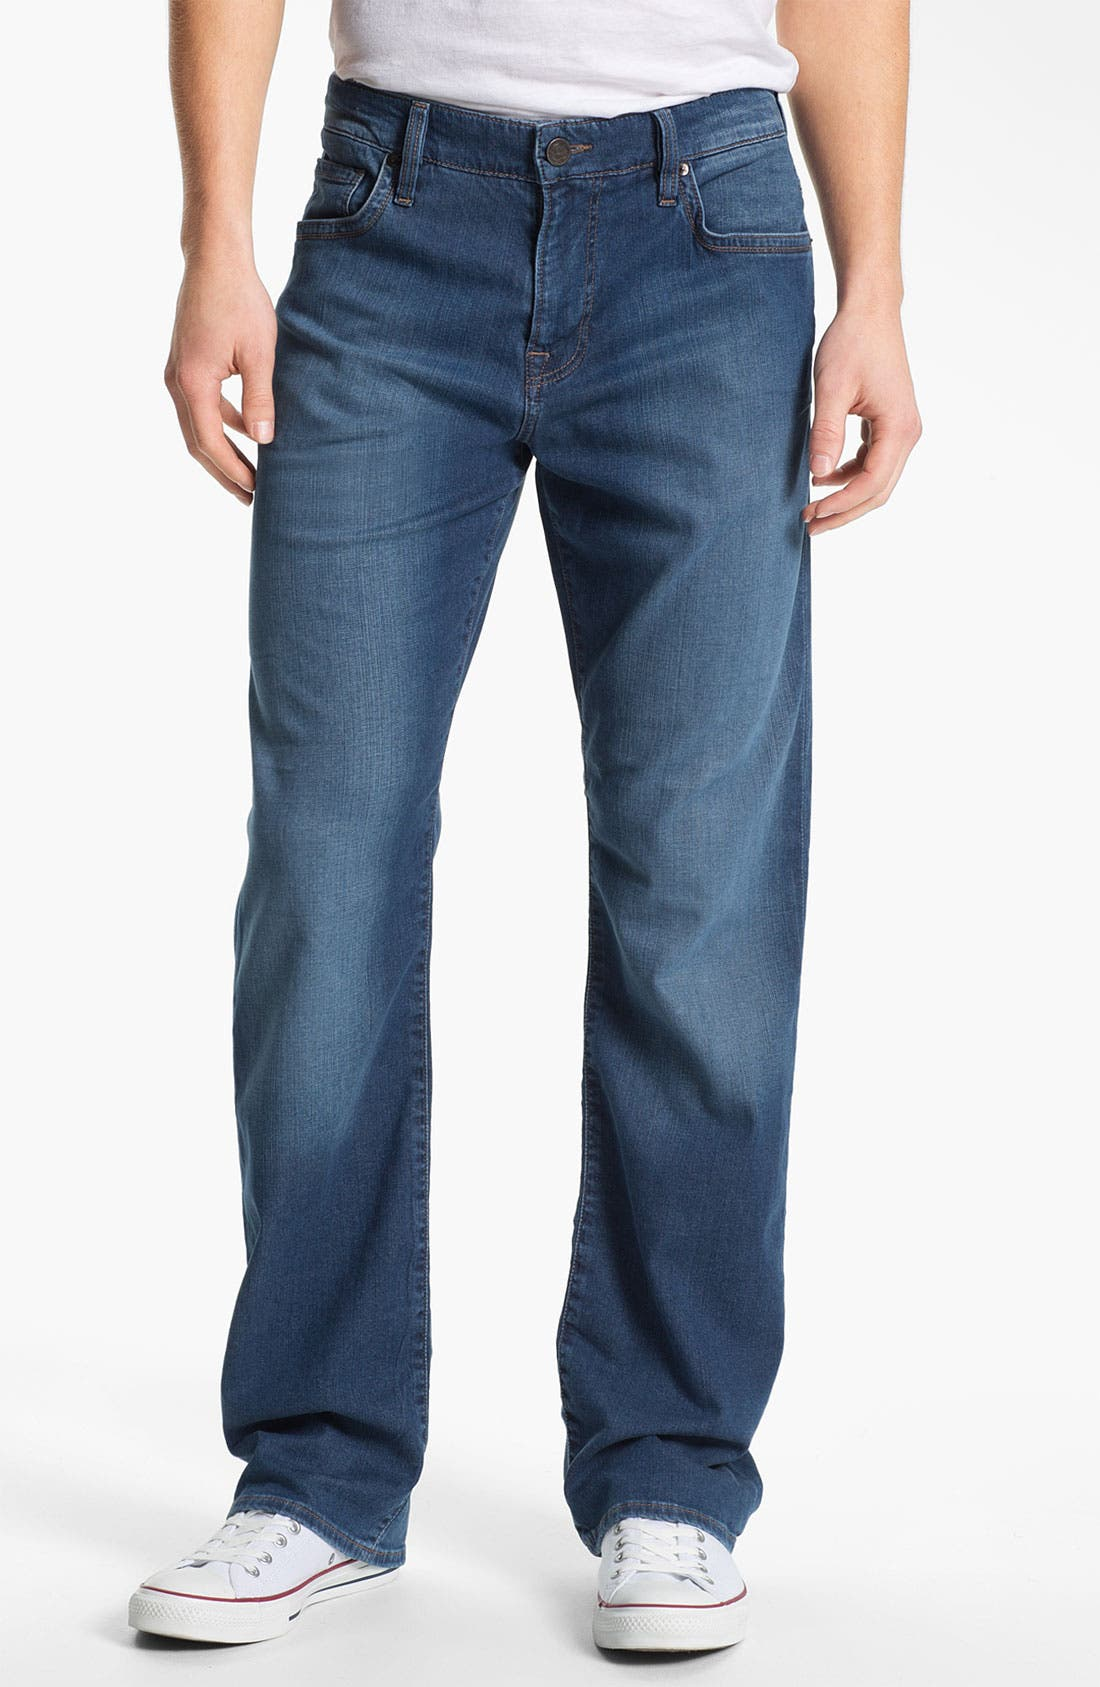 Main Image - 34 Heritage 'Courage' Straight Leg Jeans (Mid Cashmere) (Online Exclusive)